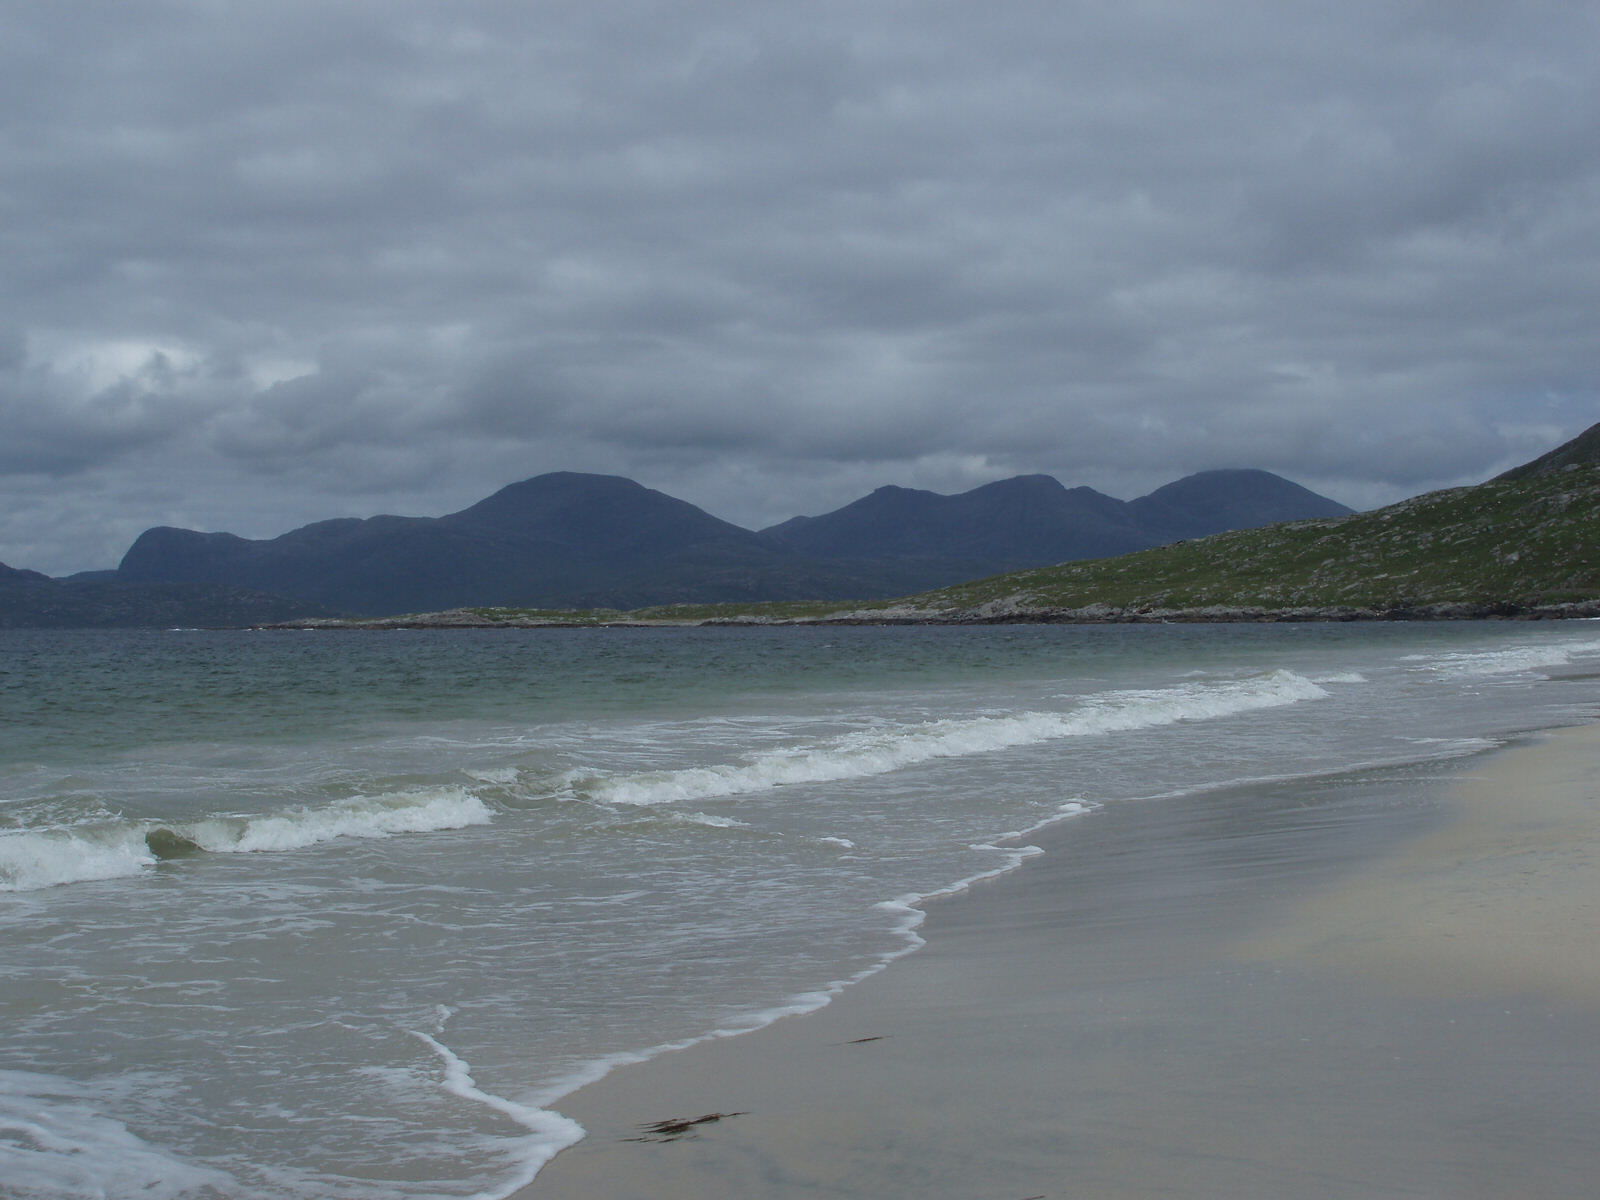 North Harris mountains